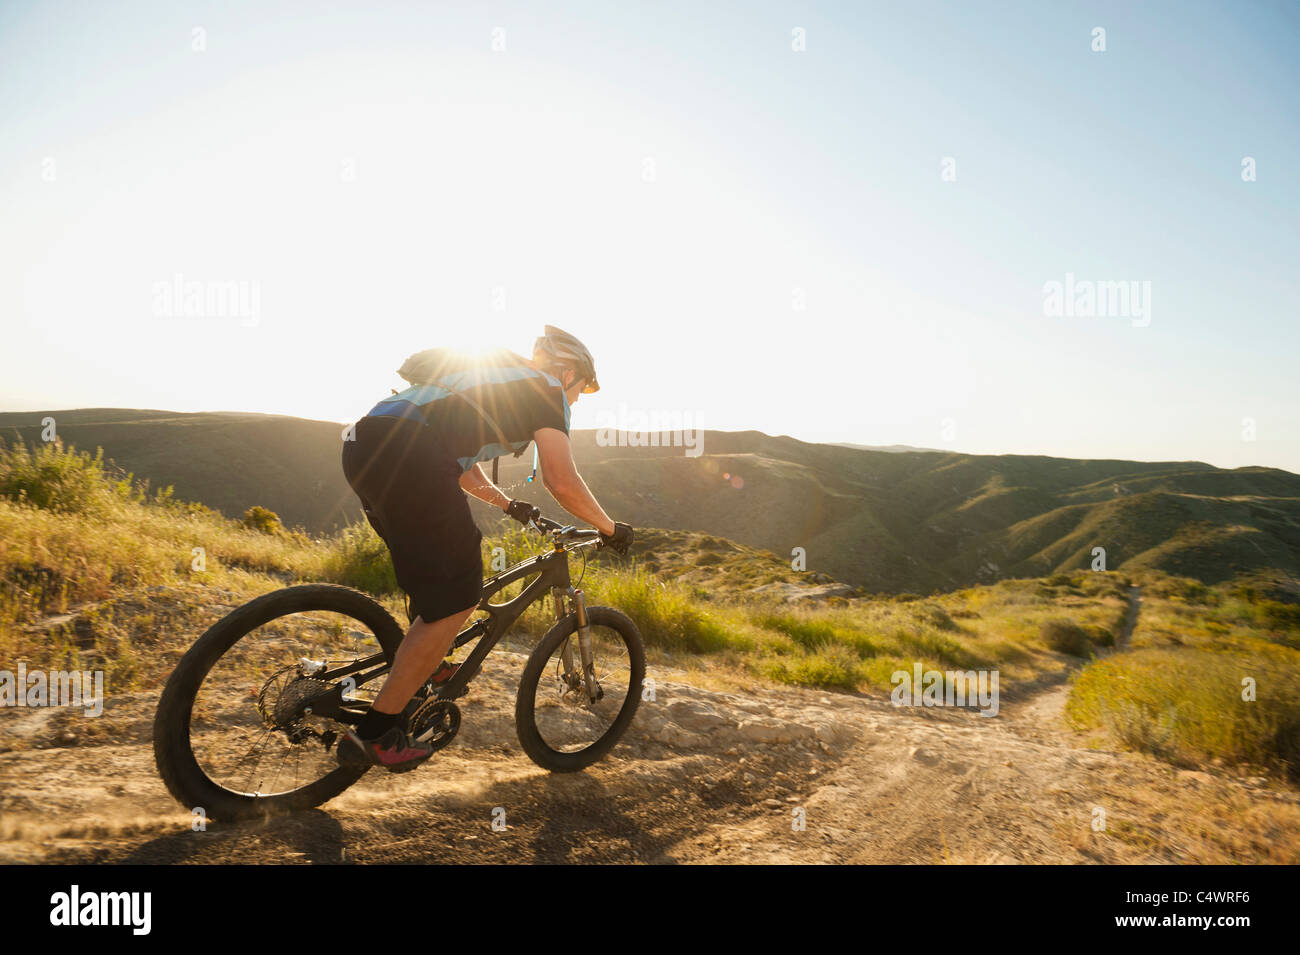 USA,California,Laguna Beach,vélo de montagne équitation ski Photo Stock